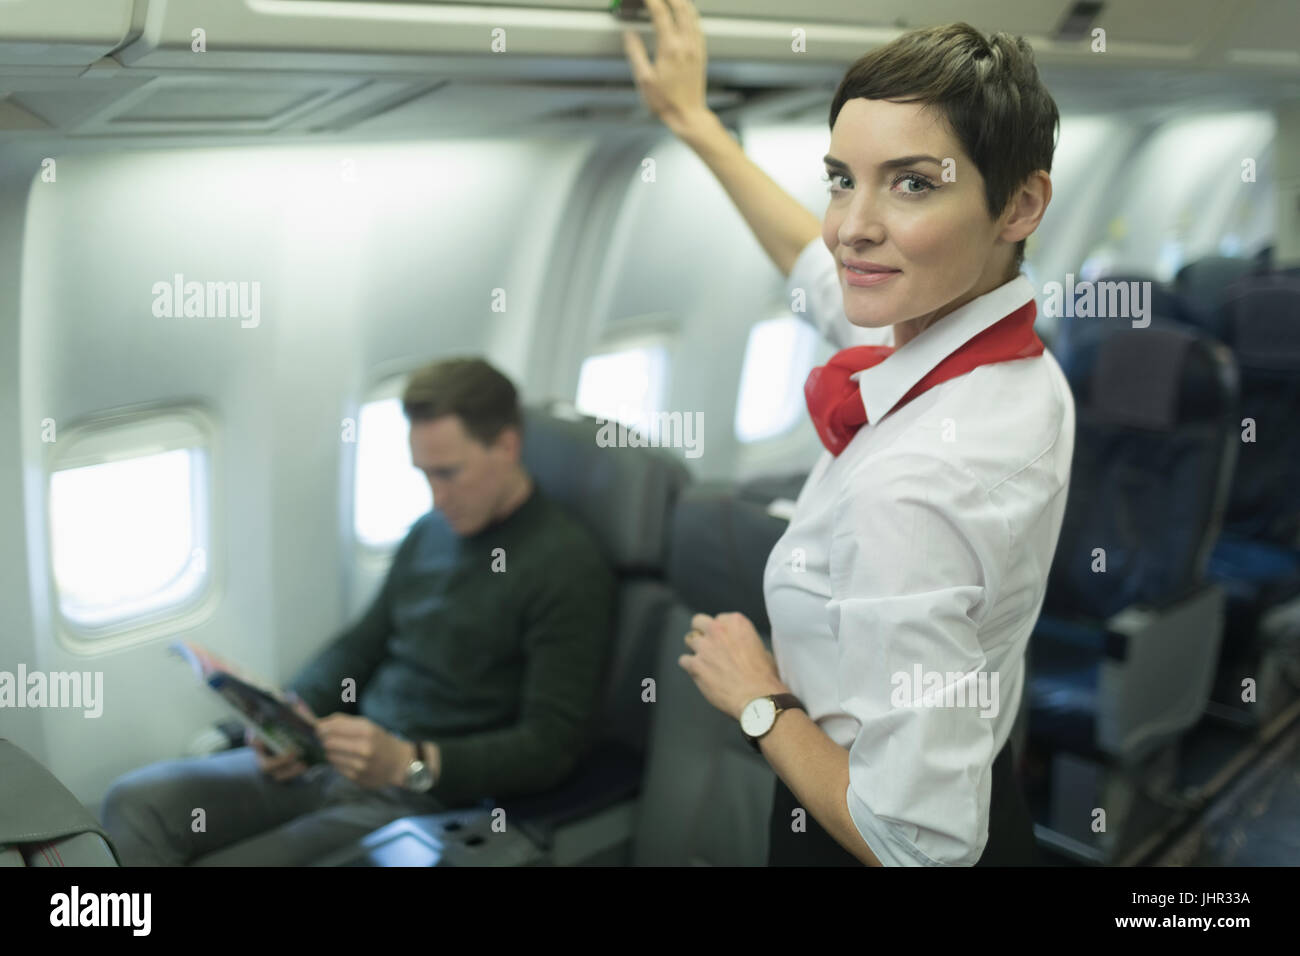 Confident air hostess smiling at camera while passenger reading magazine in an aircraft - Stock Image